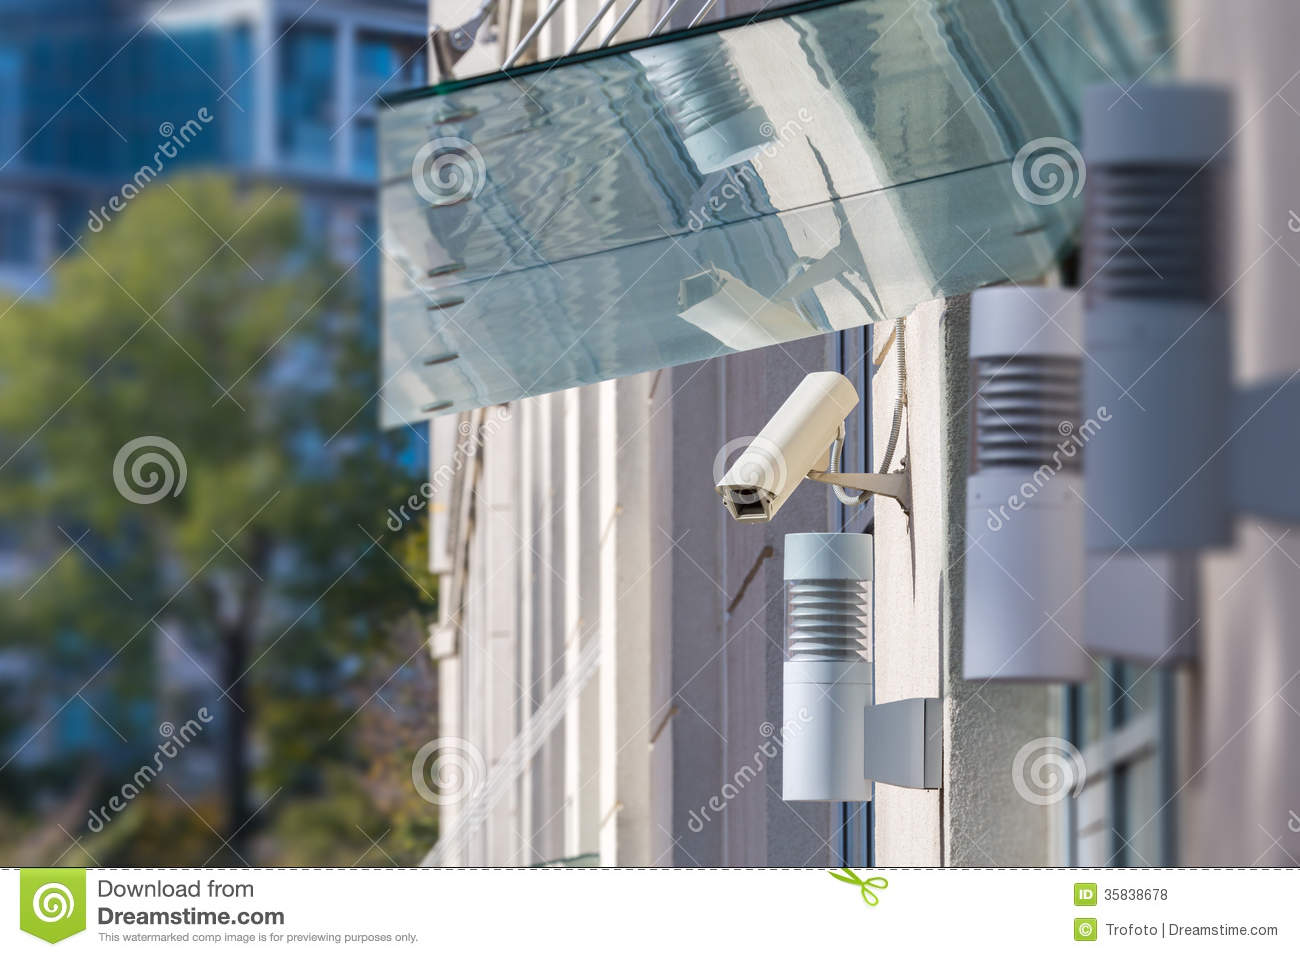 Cctv Camera On The Front Of The House Royalty Free Stock